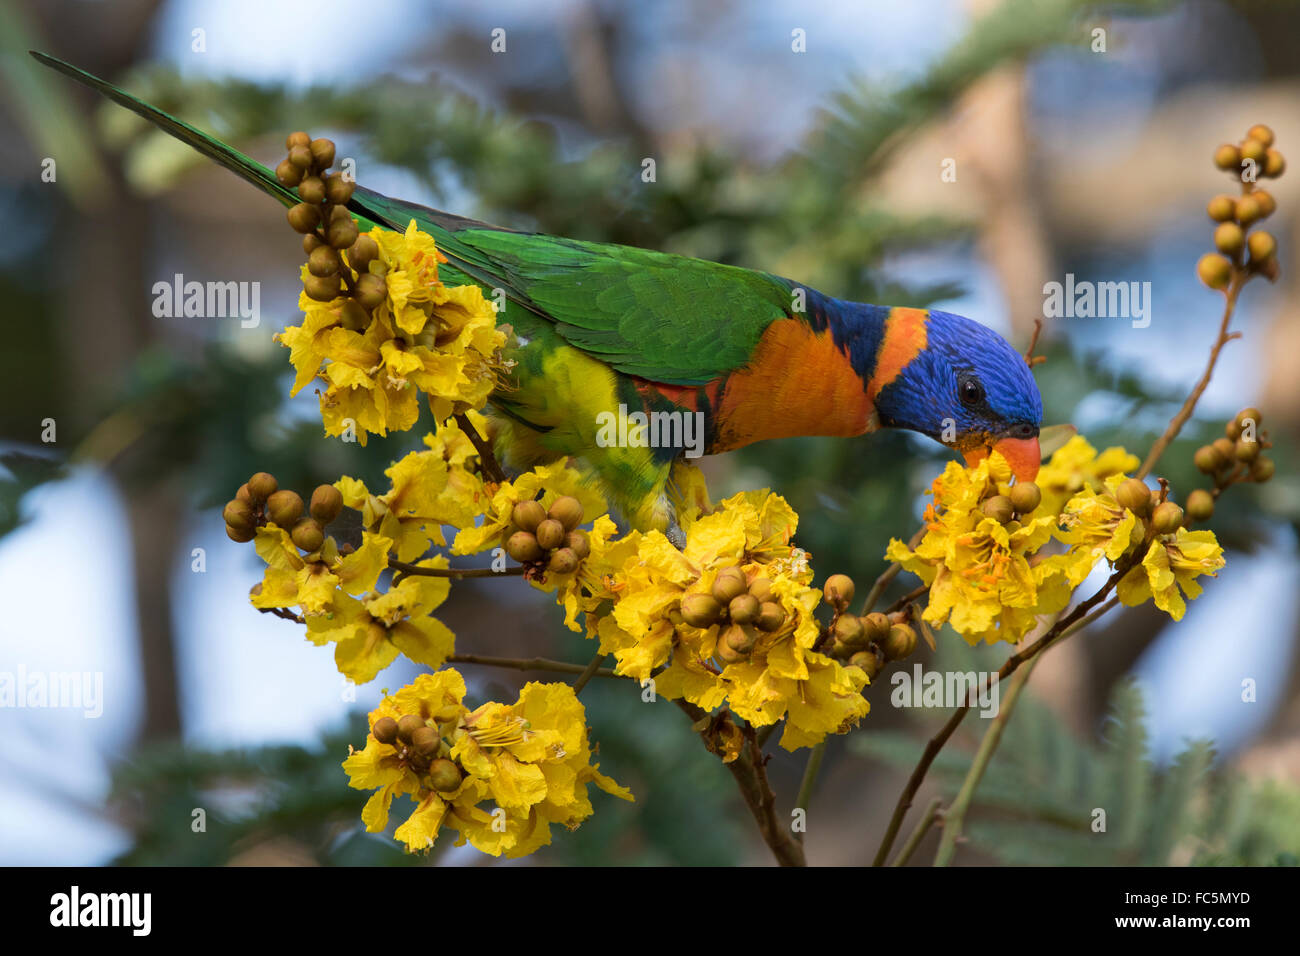 Red-collared Lorikeet (Trichoglossus rubritorquis) feeding on nectar in a flowering tree Stock Photo